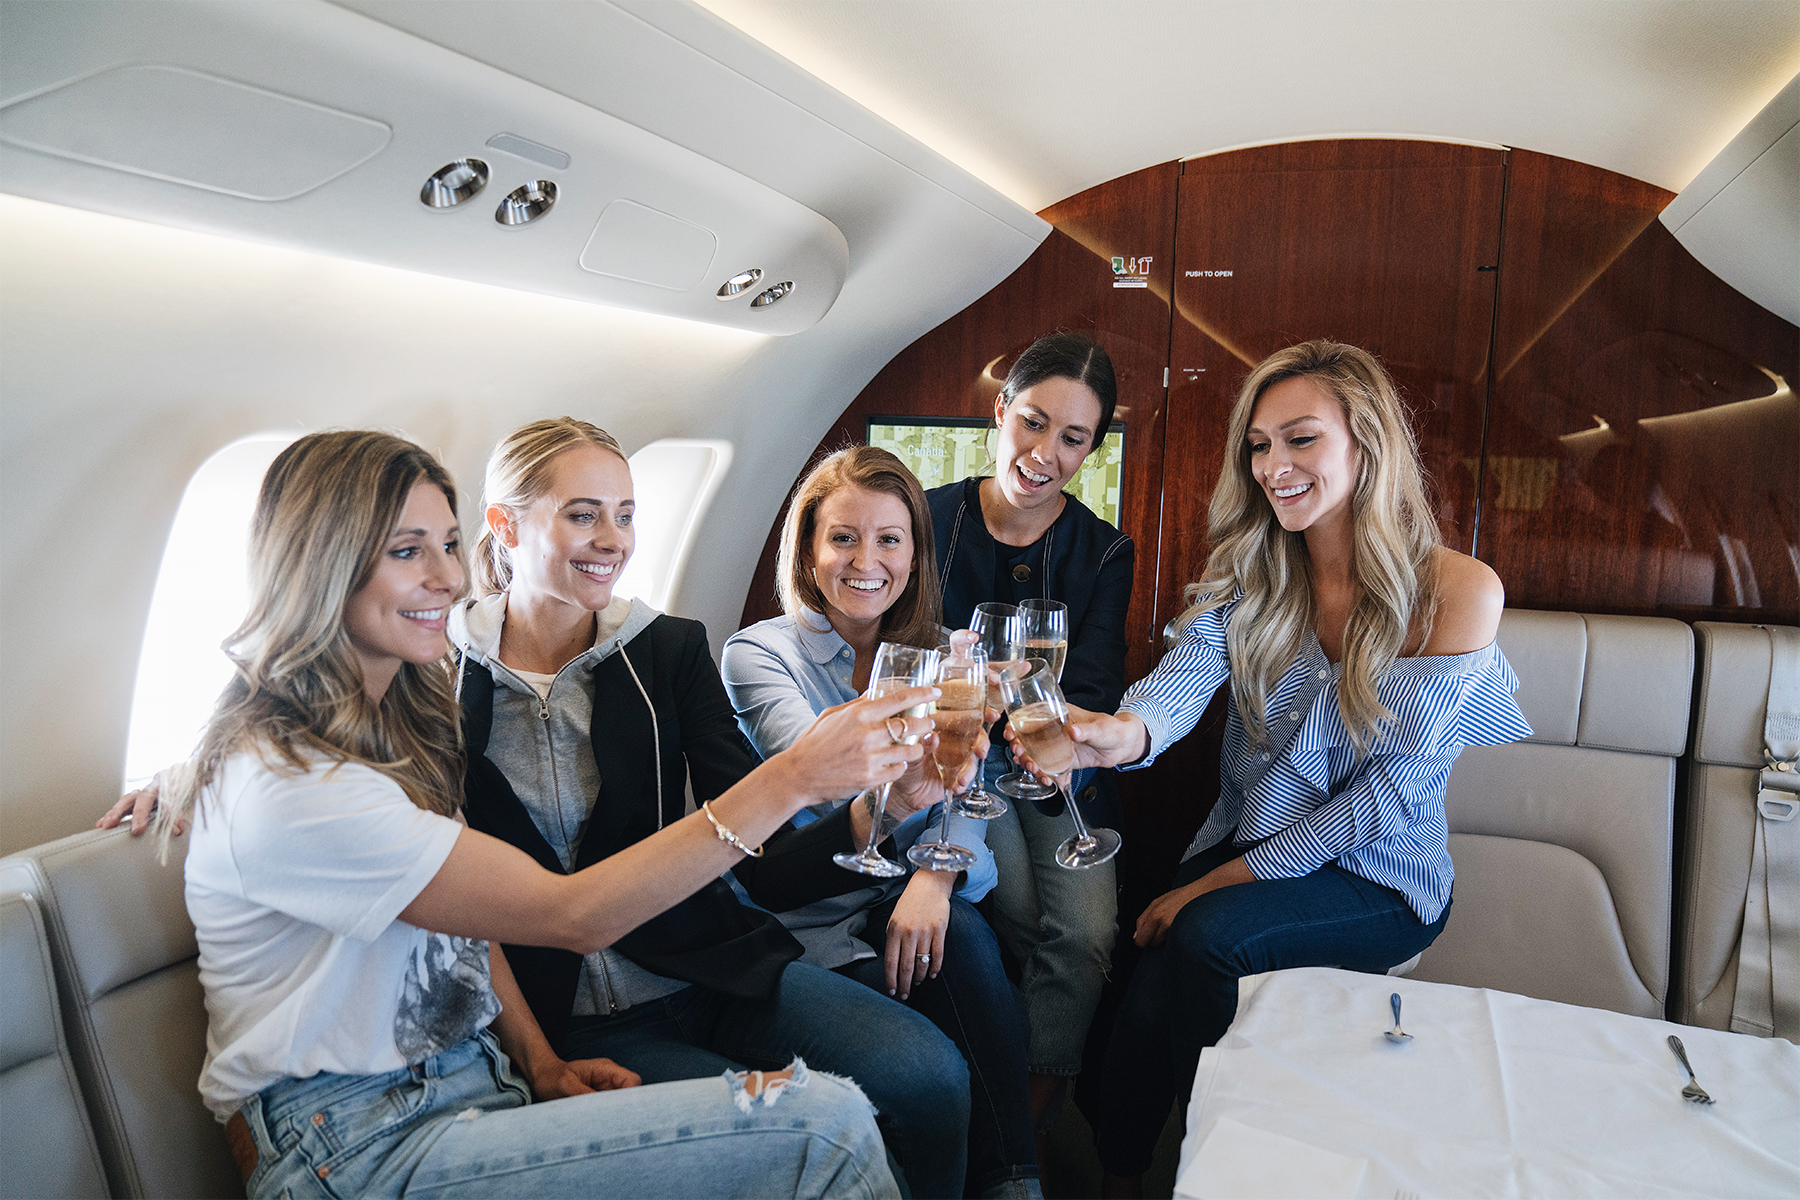 NetJets Influencers